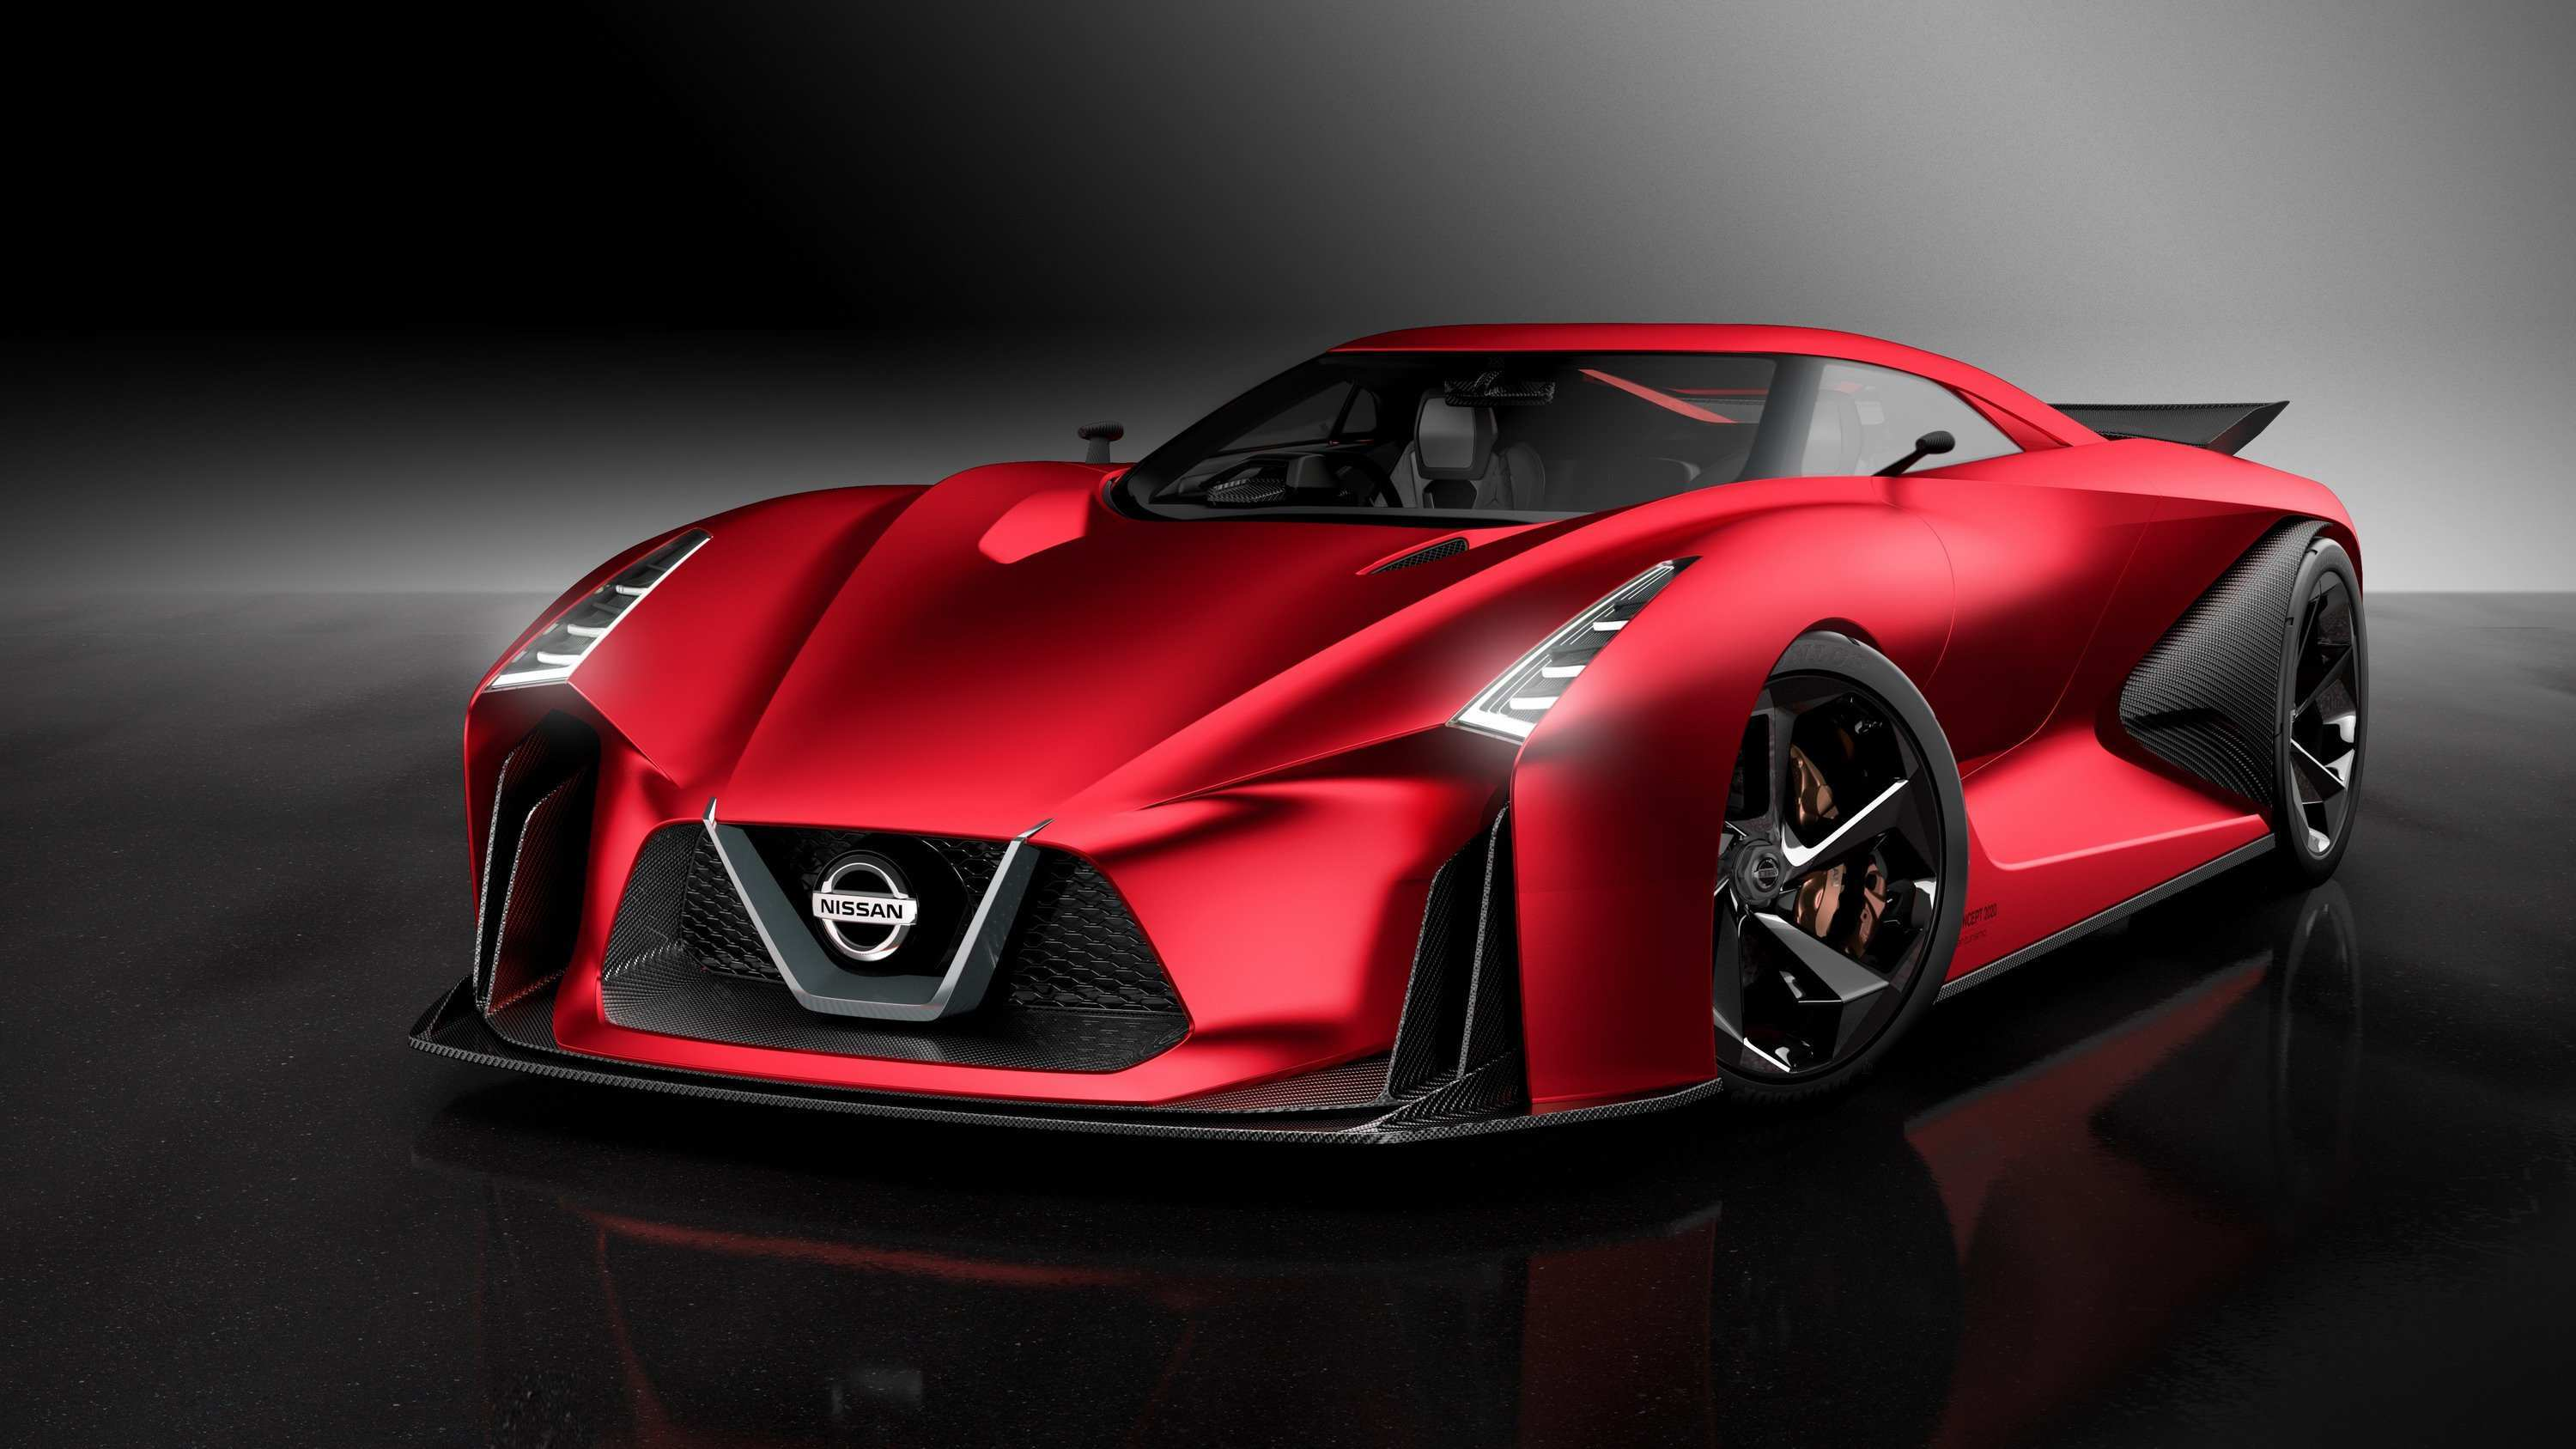 36 Best Review 2020 Nissan Gtr Speed Test with 2020 Nissan Gtr